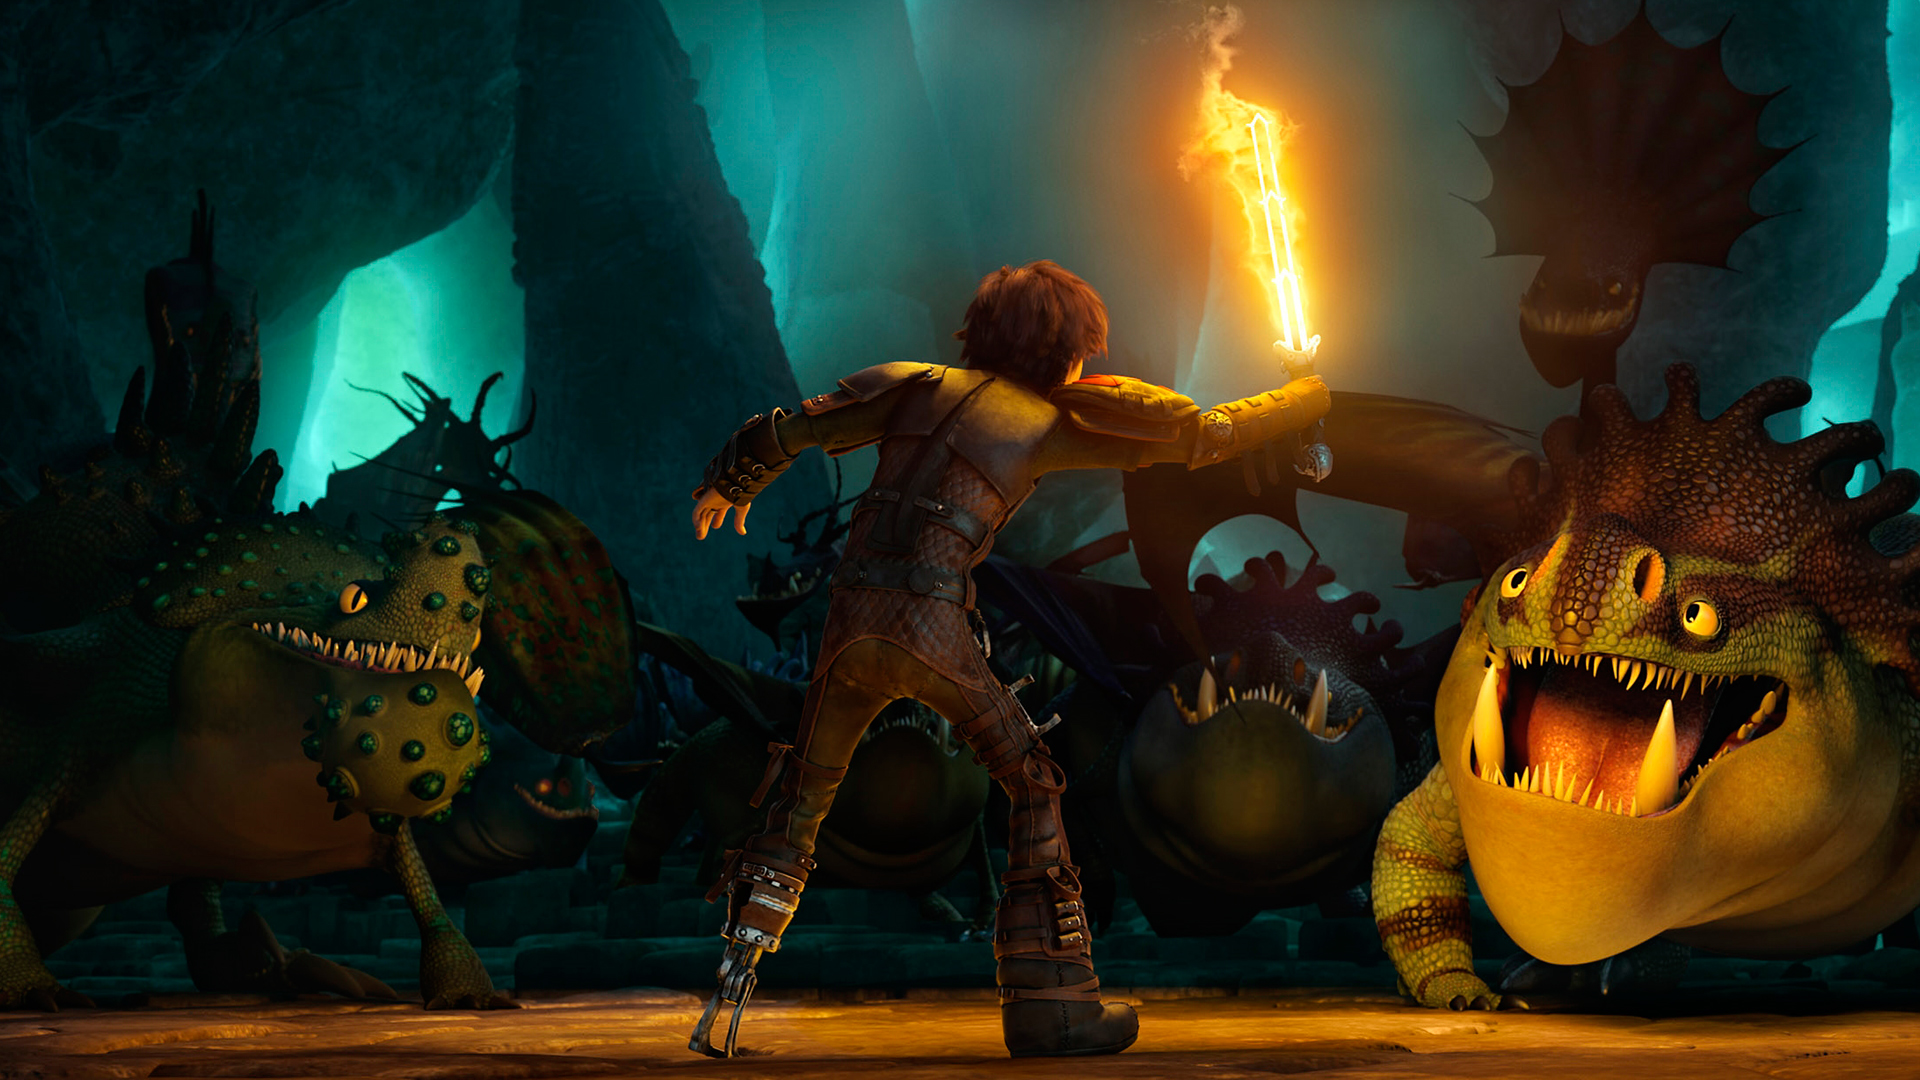 how to train your dragon 1 download kickass